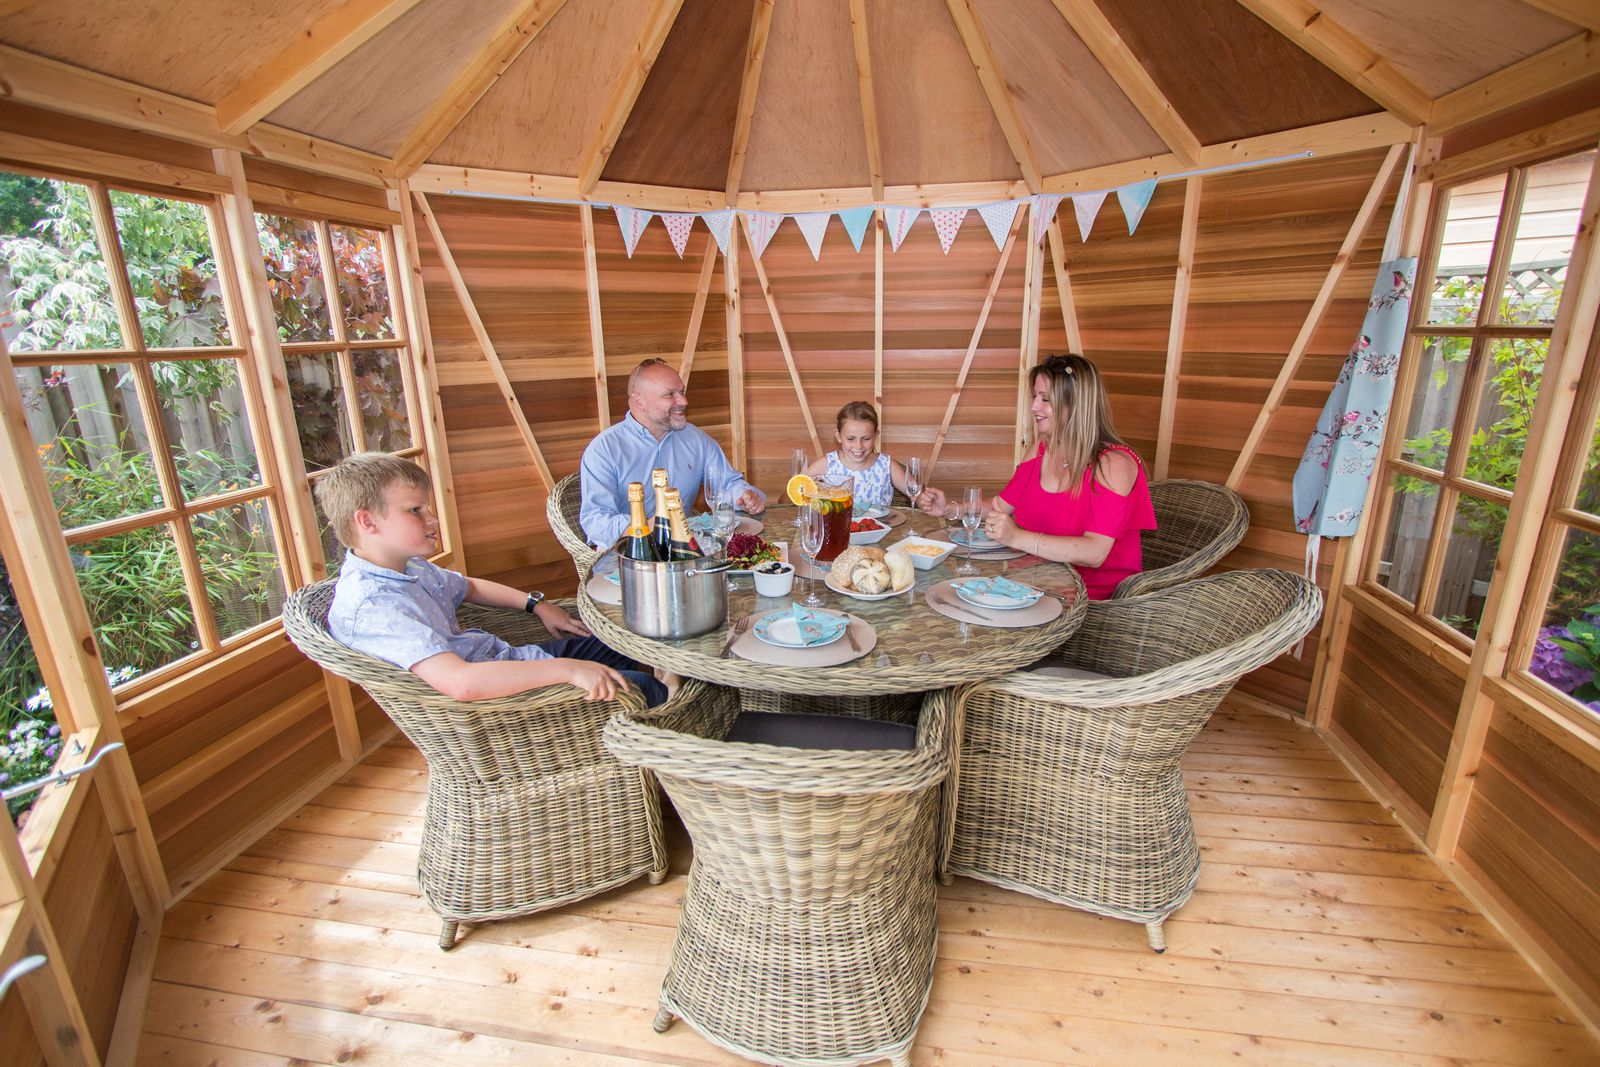 You could be relaxing with friends and family in a stylish summerhouse like this cedar summerhouse from Alton.